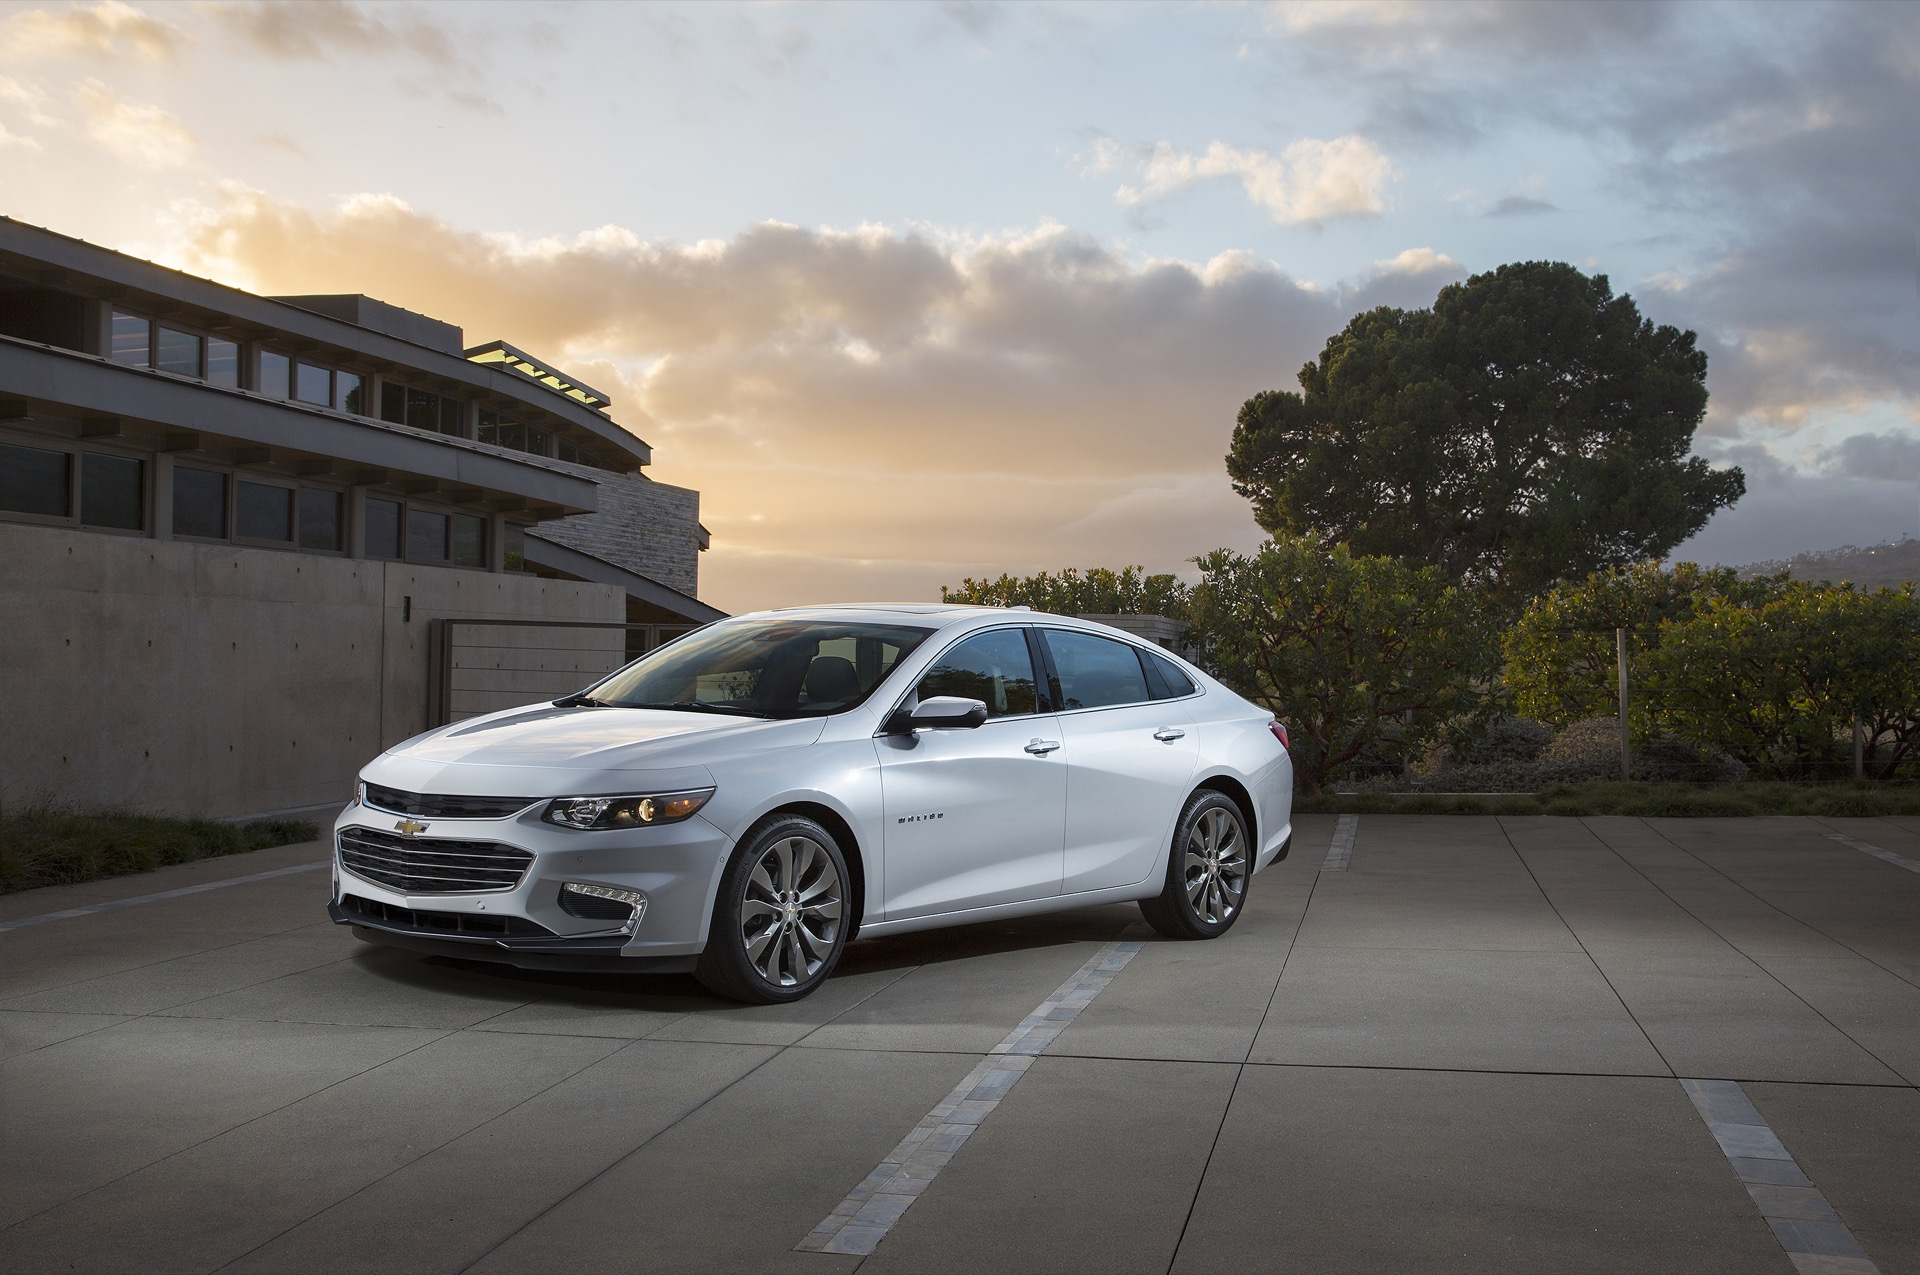 Chevy Malibu Gas Mileage >> 2016 Chevrolet Malibu Chevy Review Ratings Specs Prices